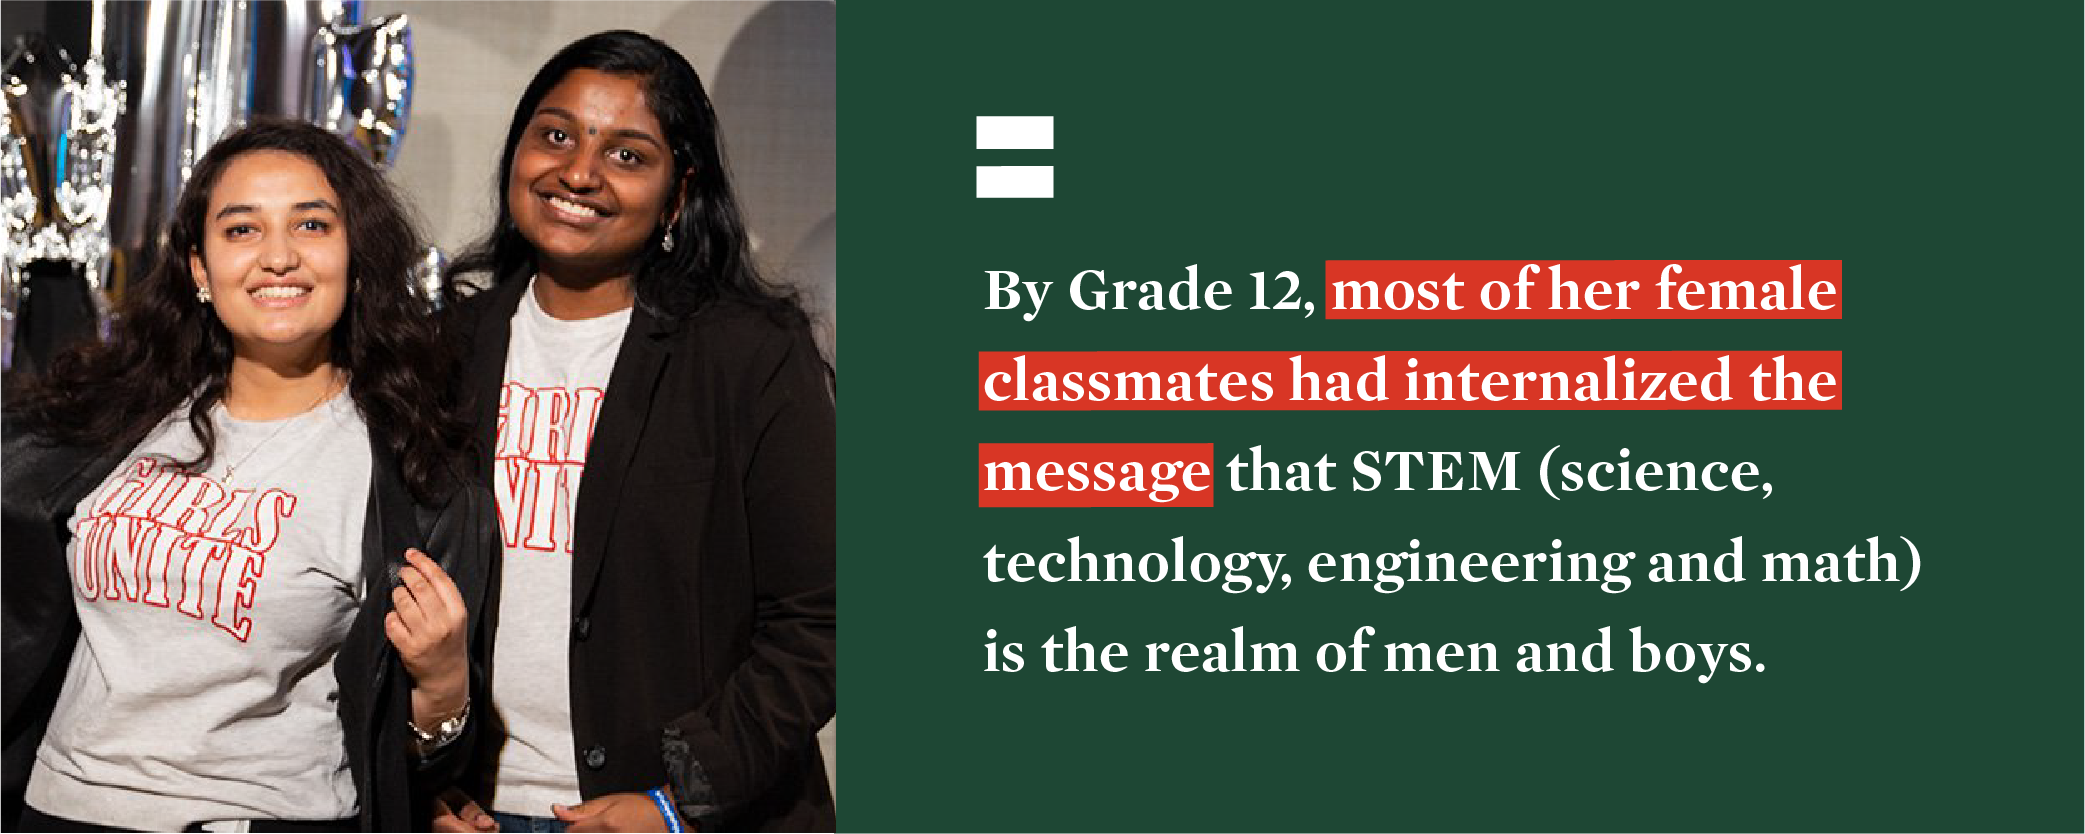 By grade 12, most of her female classmates had internalized the message that STEM (science, technology, engineering and math) is the realm of men and boys.